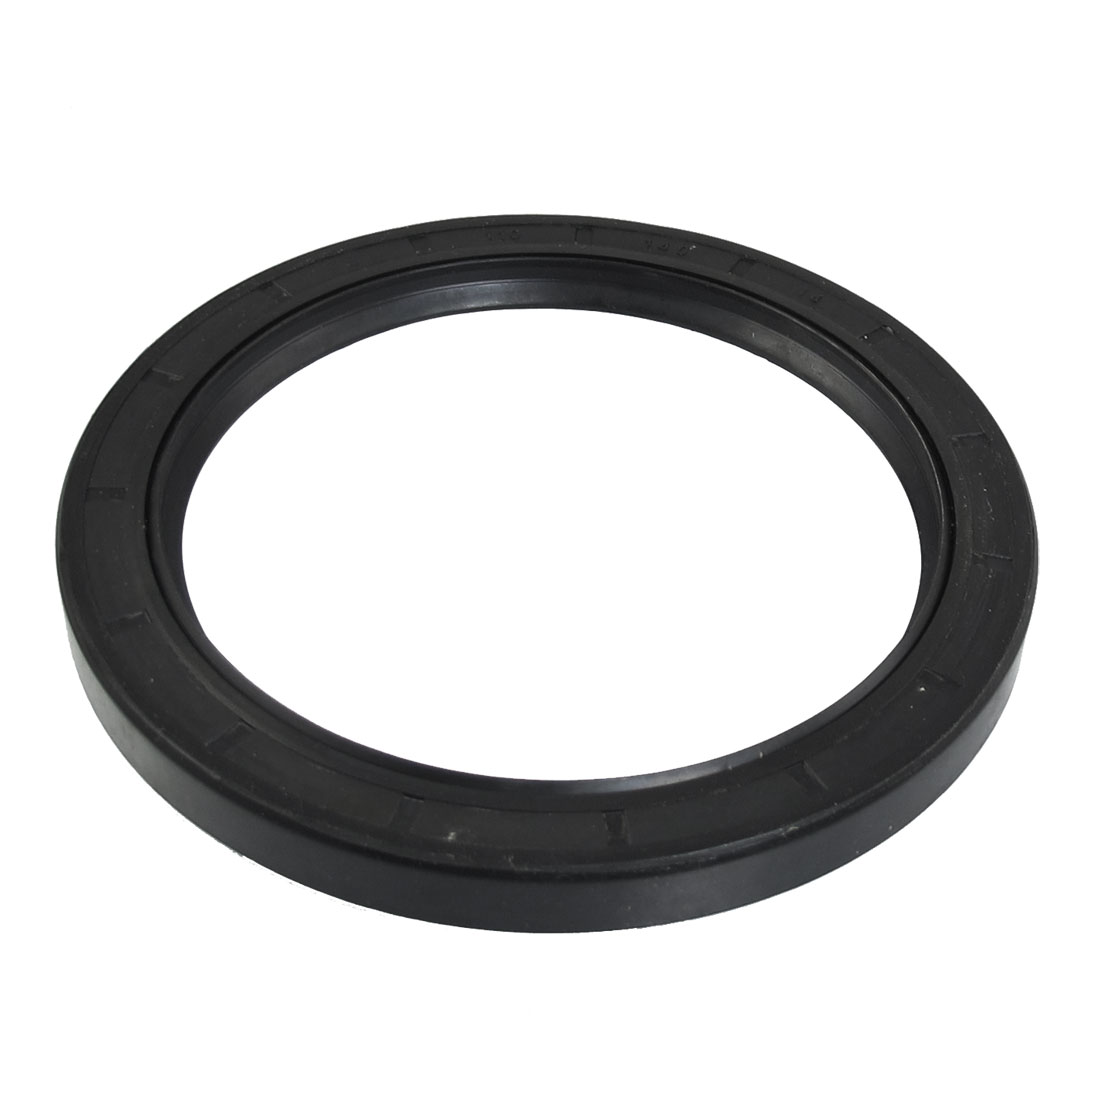 Steel Spring NBR Double Lip TC Oil Seal Black 110mm x 140mm x 14mm